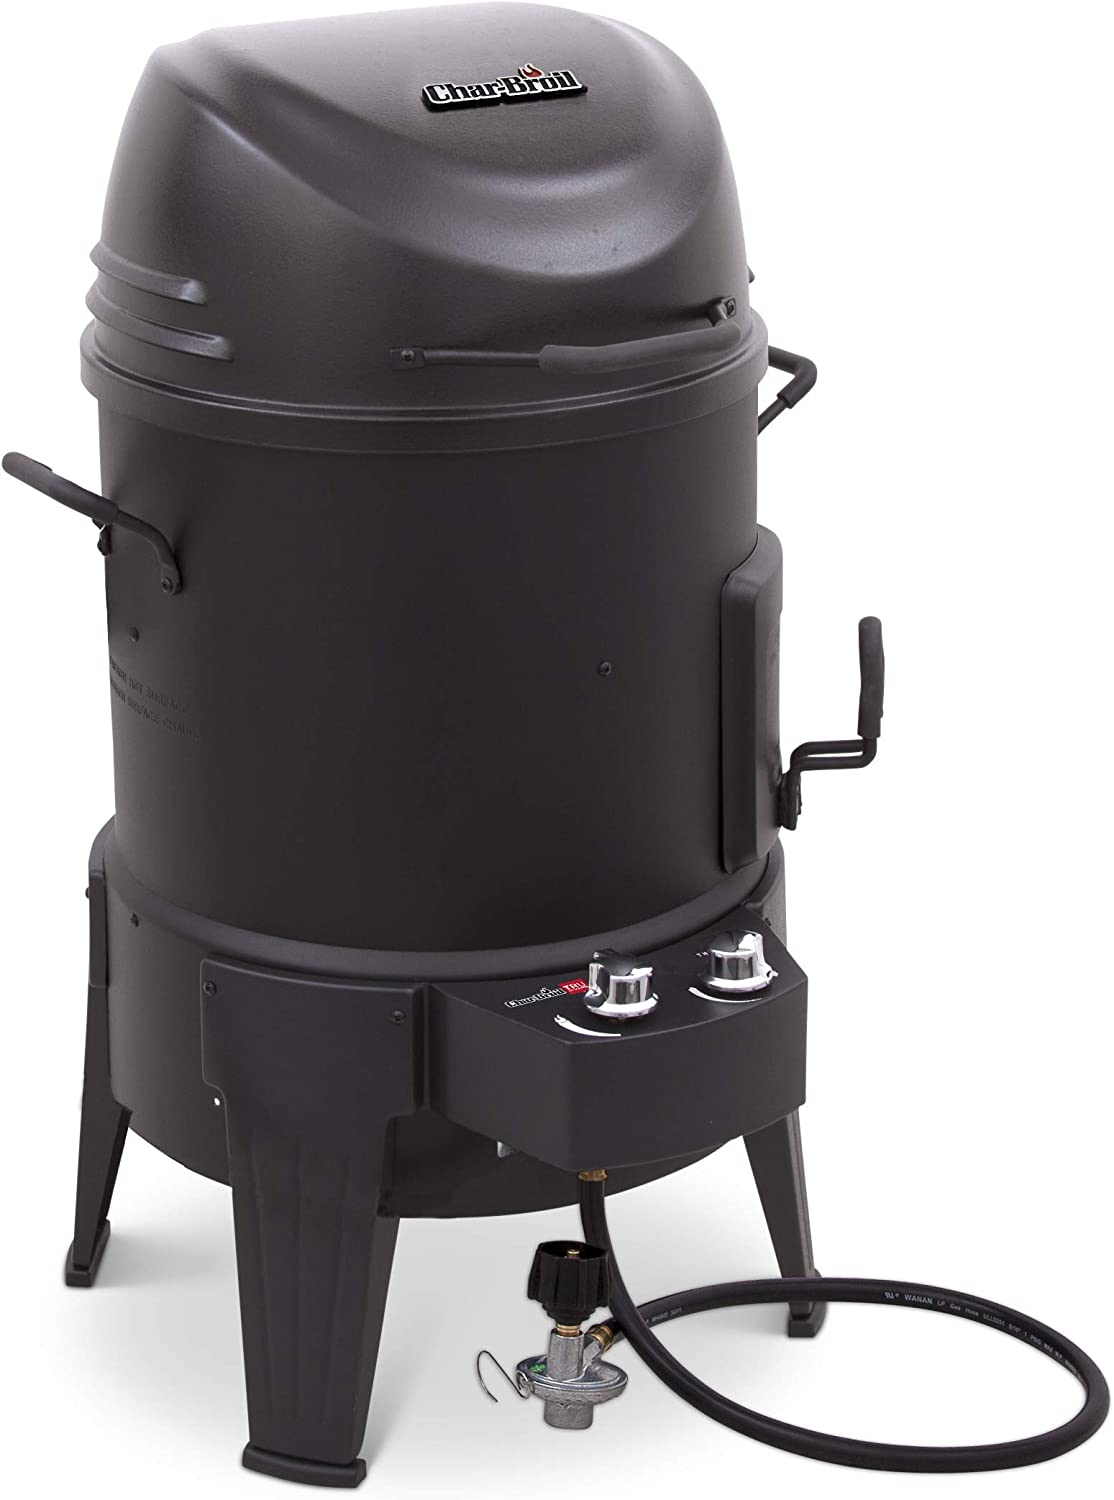 Char-Broil Smoker Roaster & Grill Best Gateway Drum